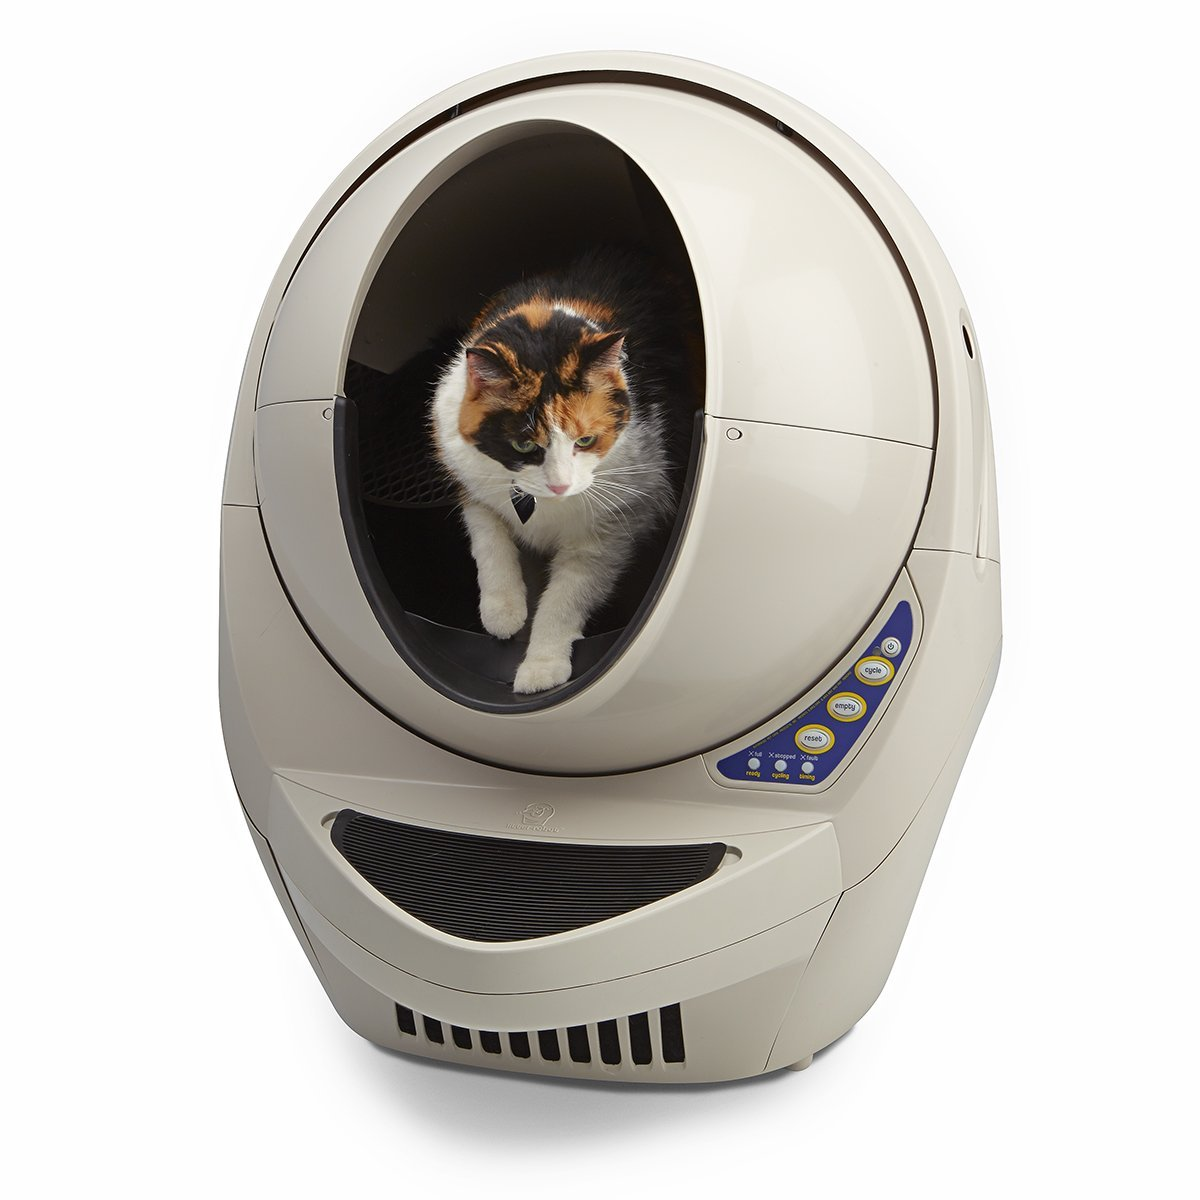 Is this the best self-cleaning litter box?